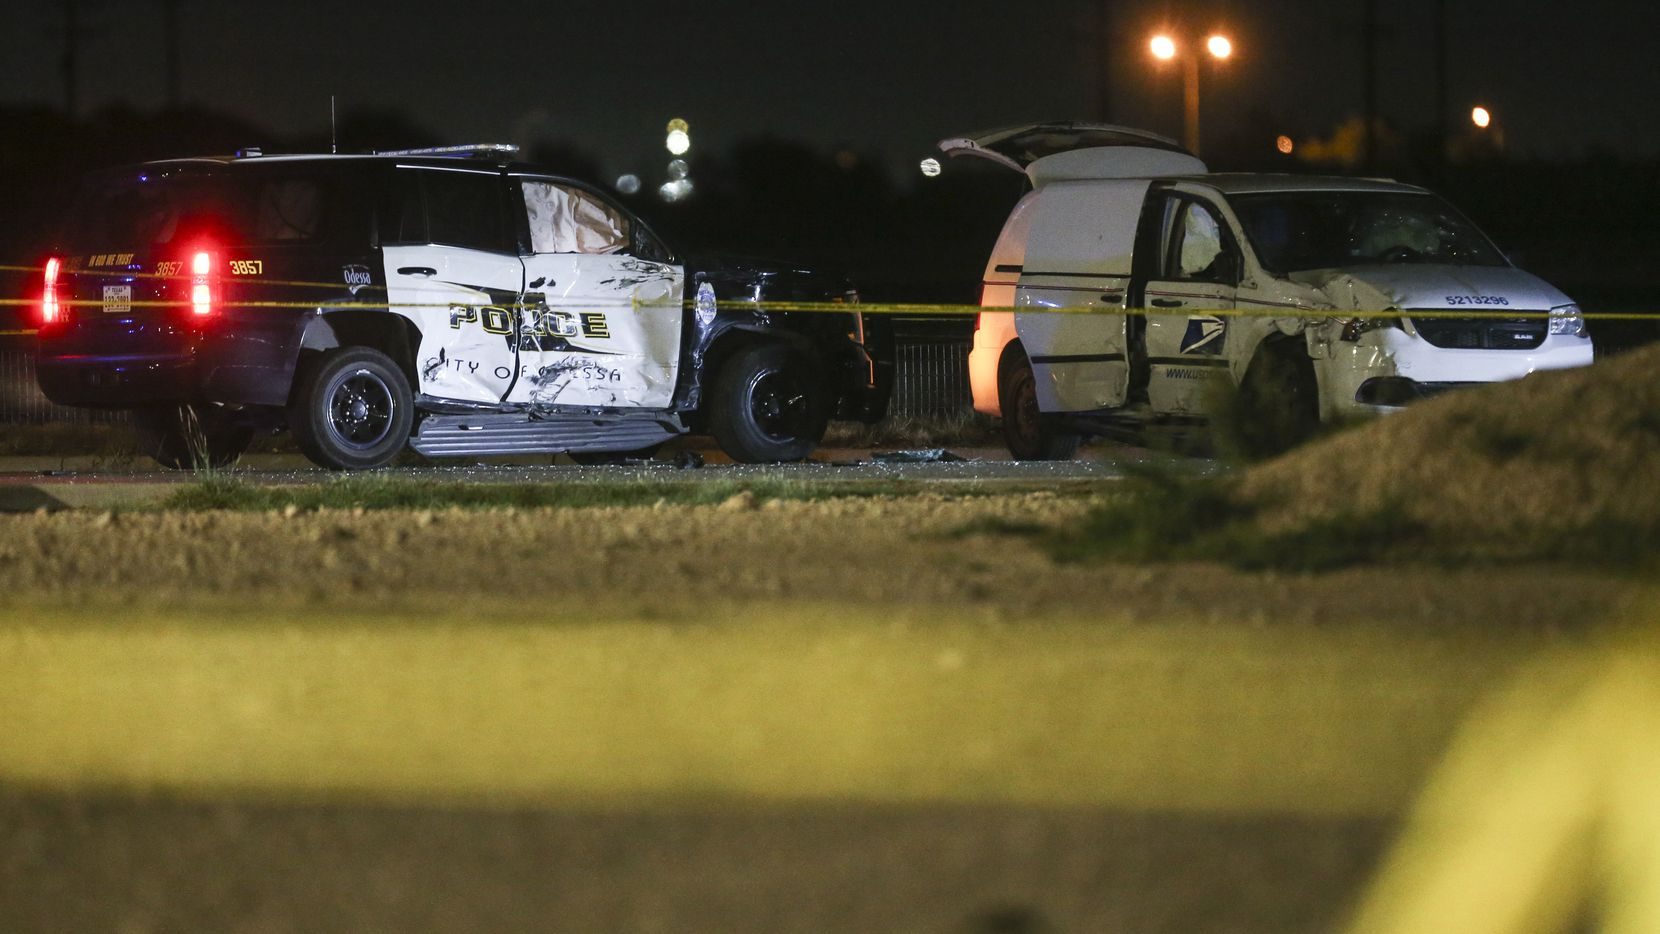 A crashed U.S. Postal Service vehicle and Odessa Police vehicle are seen Saturday, Aug. 31, 2019 at a Cinergy movie theatre in Odessa, Texas. At least five people died after more than 20 people were shot Saturday when a gunman hijacked a postal truck and began shooting randomly in the Odessa area of West Texas, authorities say.